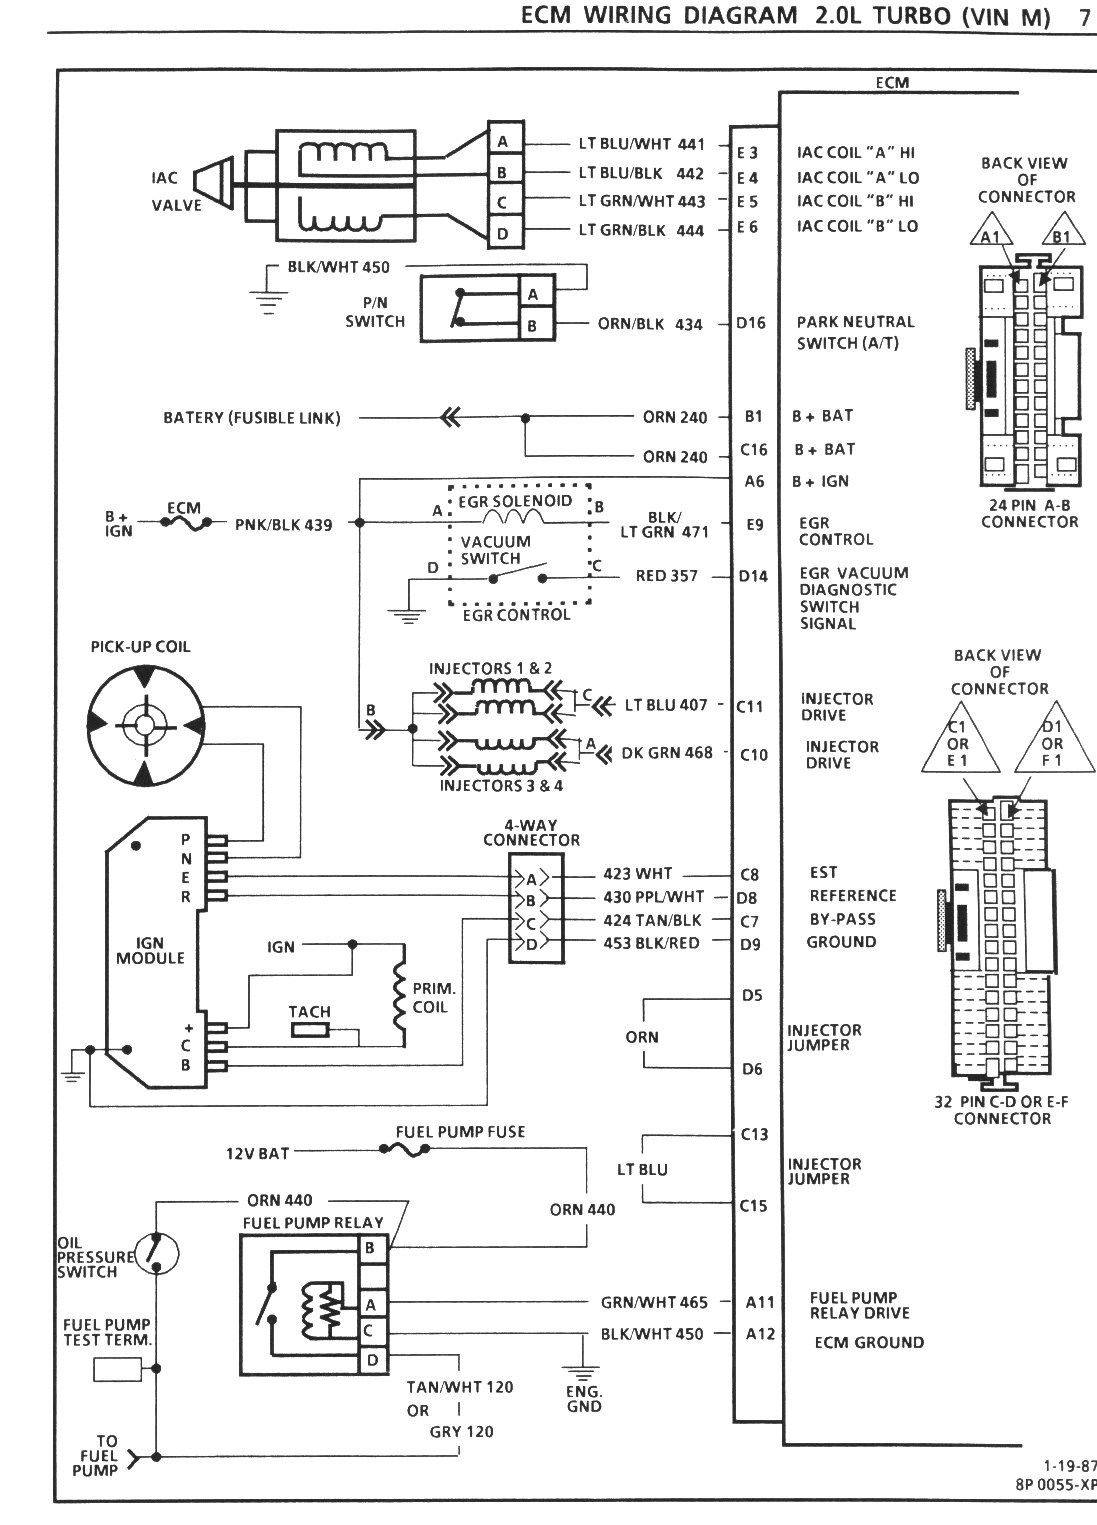 bdf6 ddec ecm iii wiring diagram | wiring resources  wiring resources